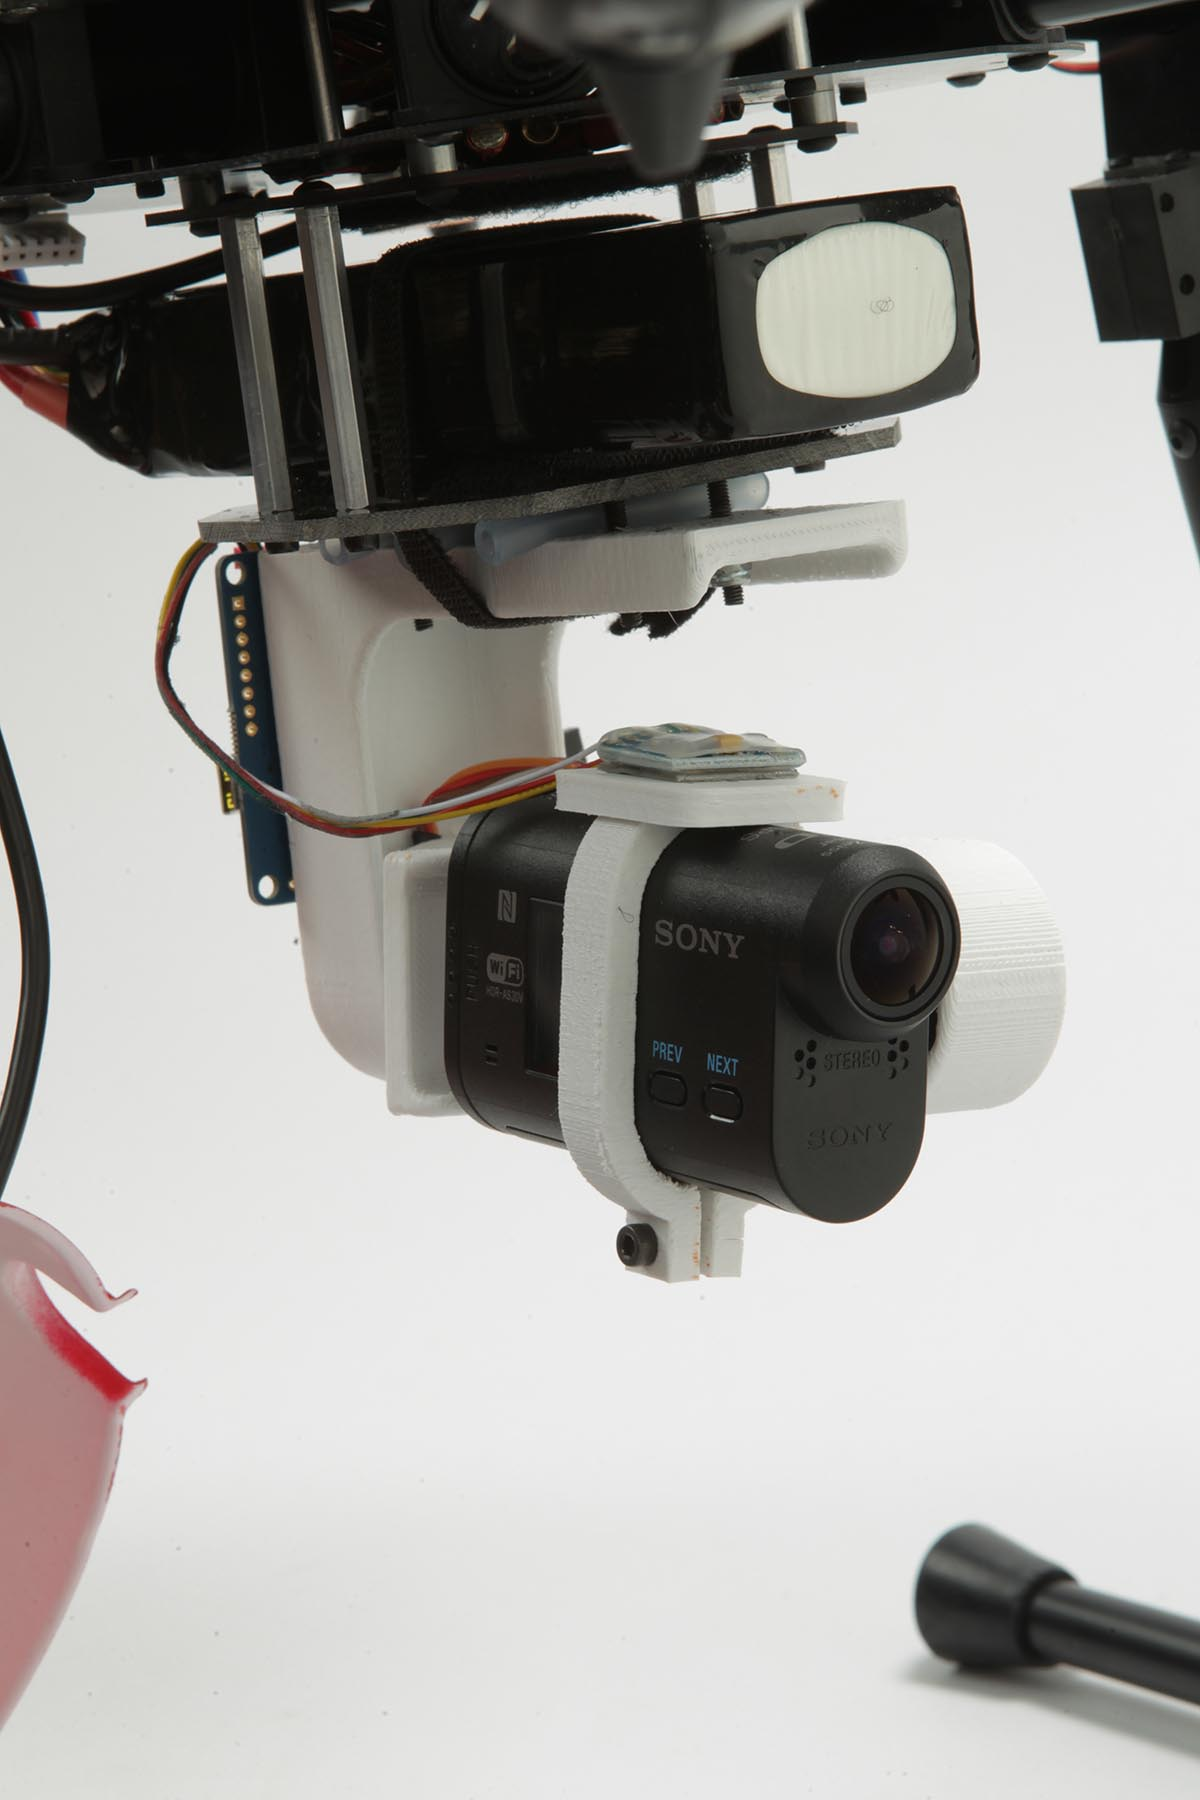 Sony Action Cam 3D Printed Brushless Gimbal